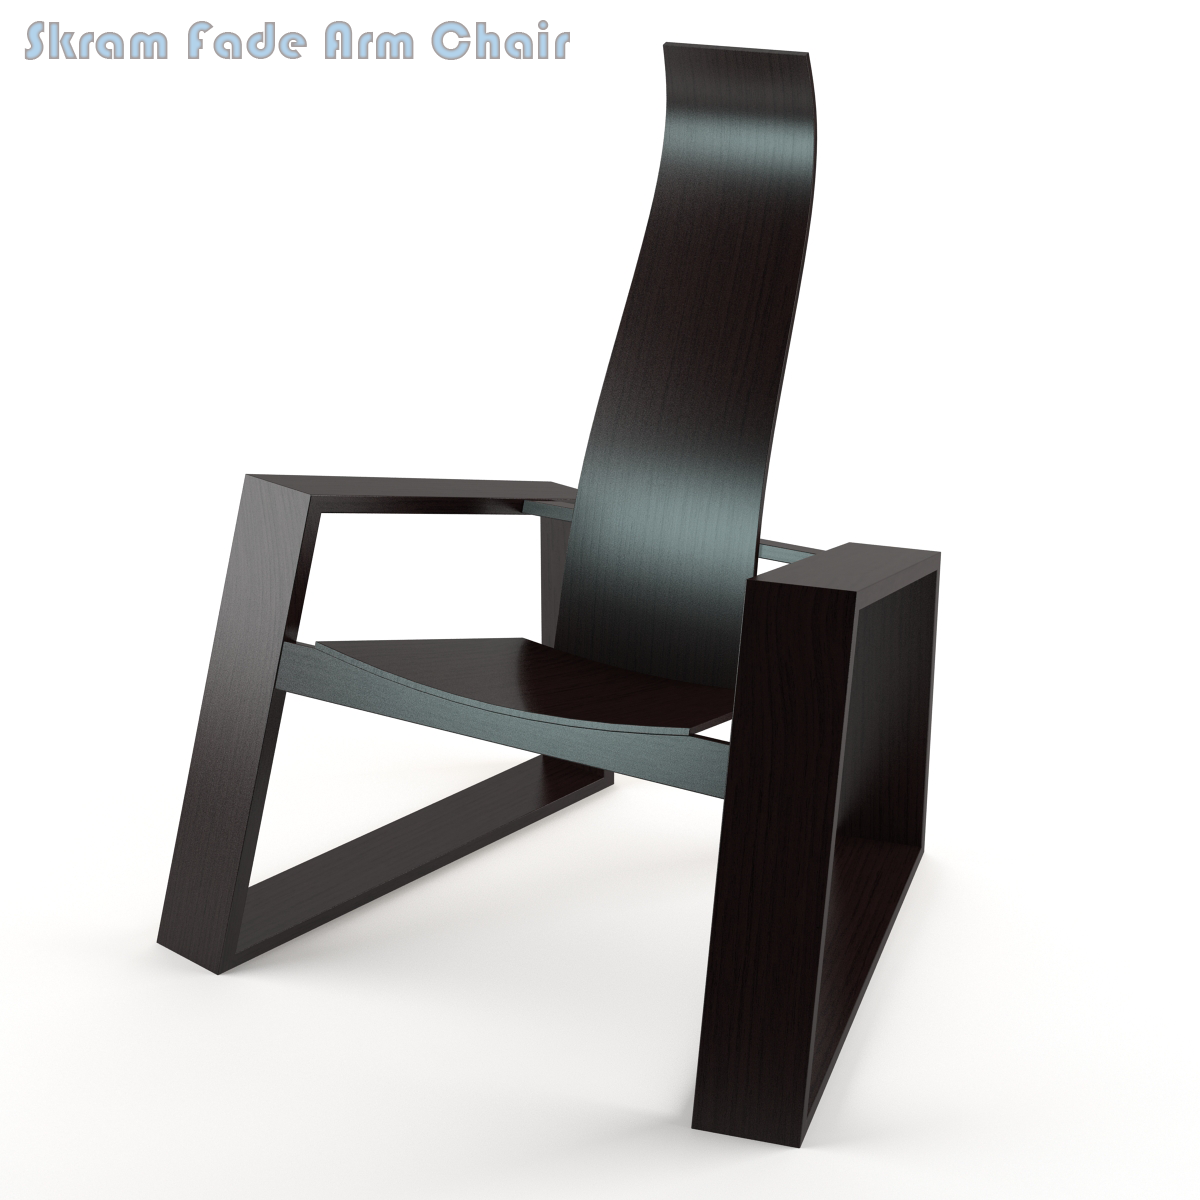 cadartet skram fade arm chair 3d model vray